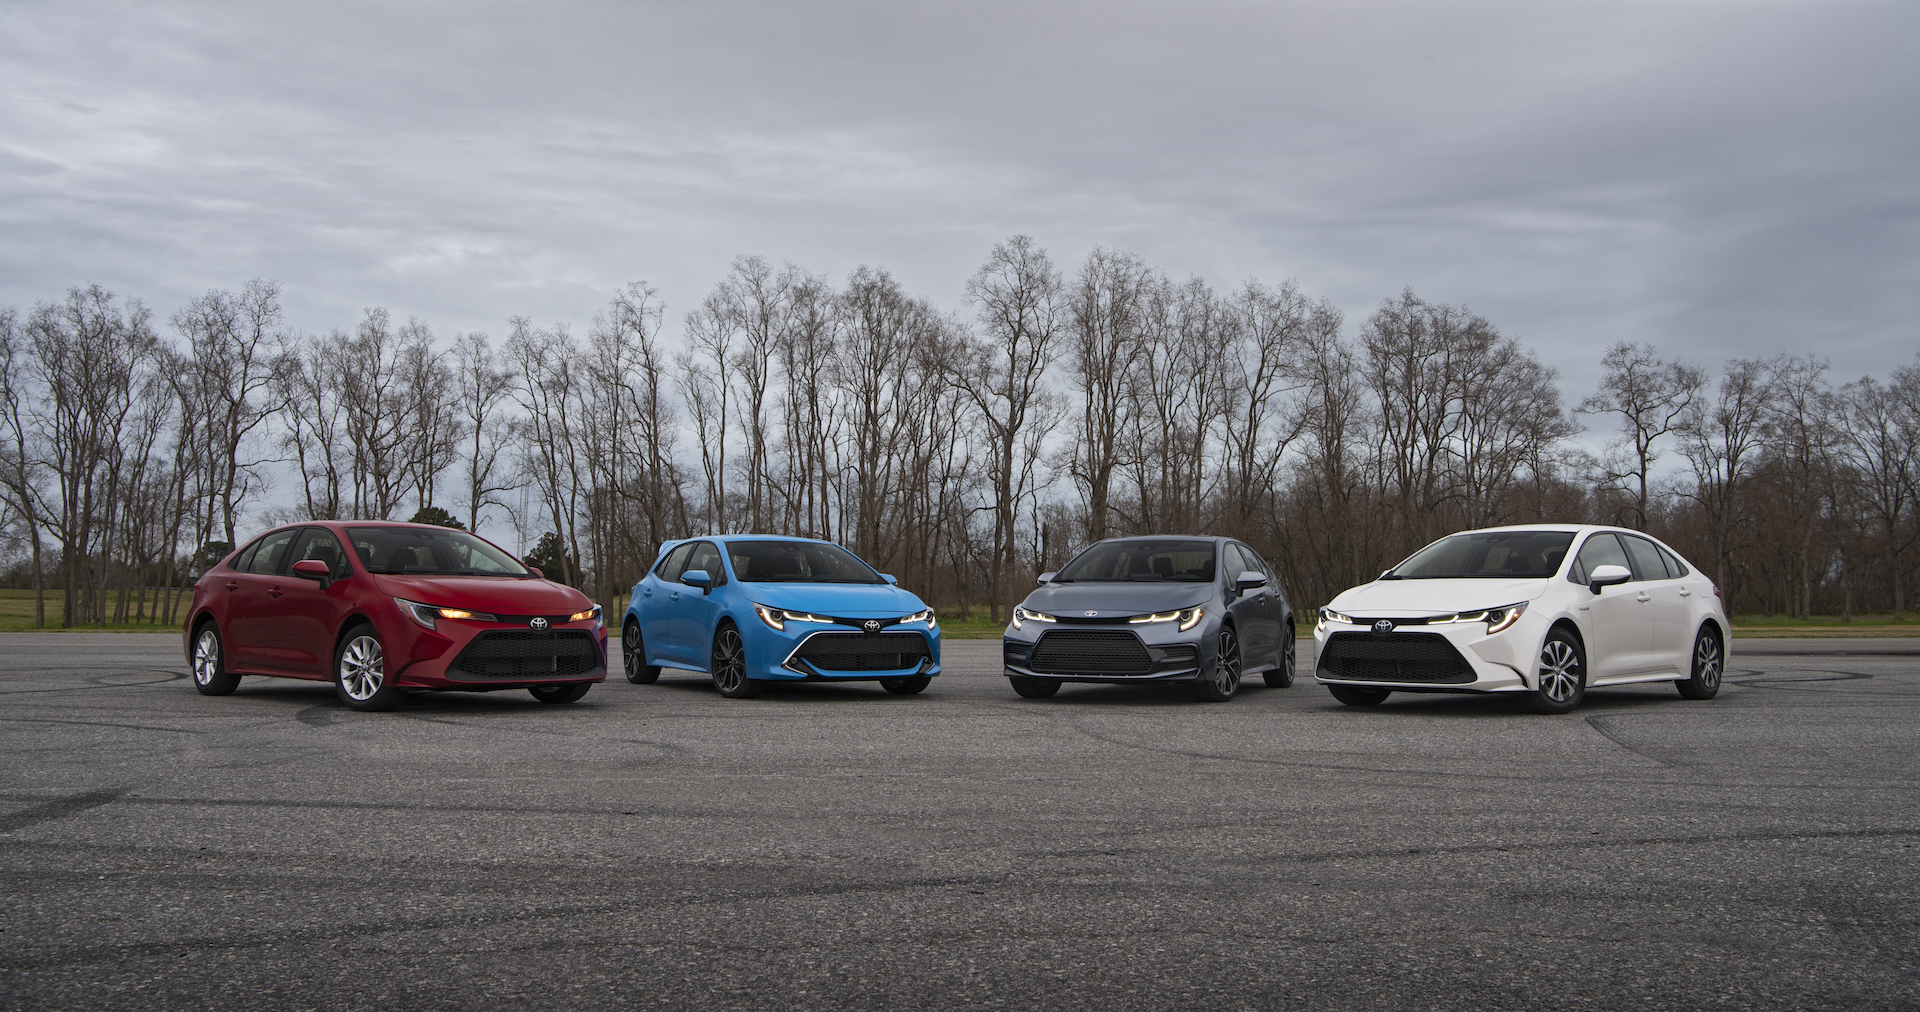 2020_Corolla_GroupShot_02_v1_current